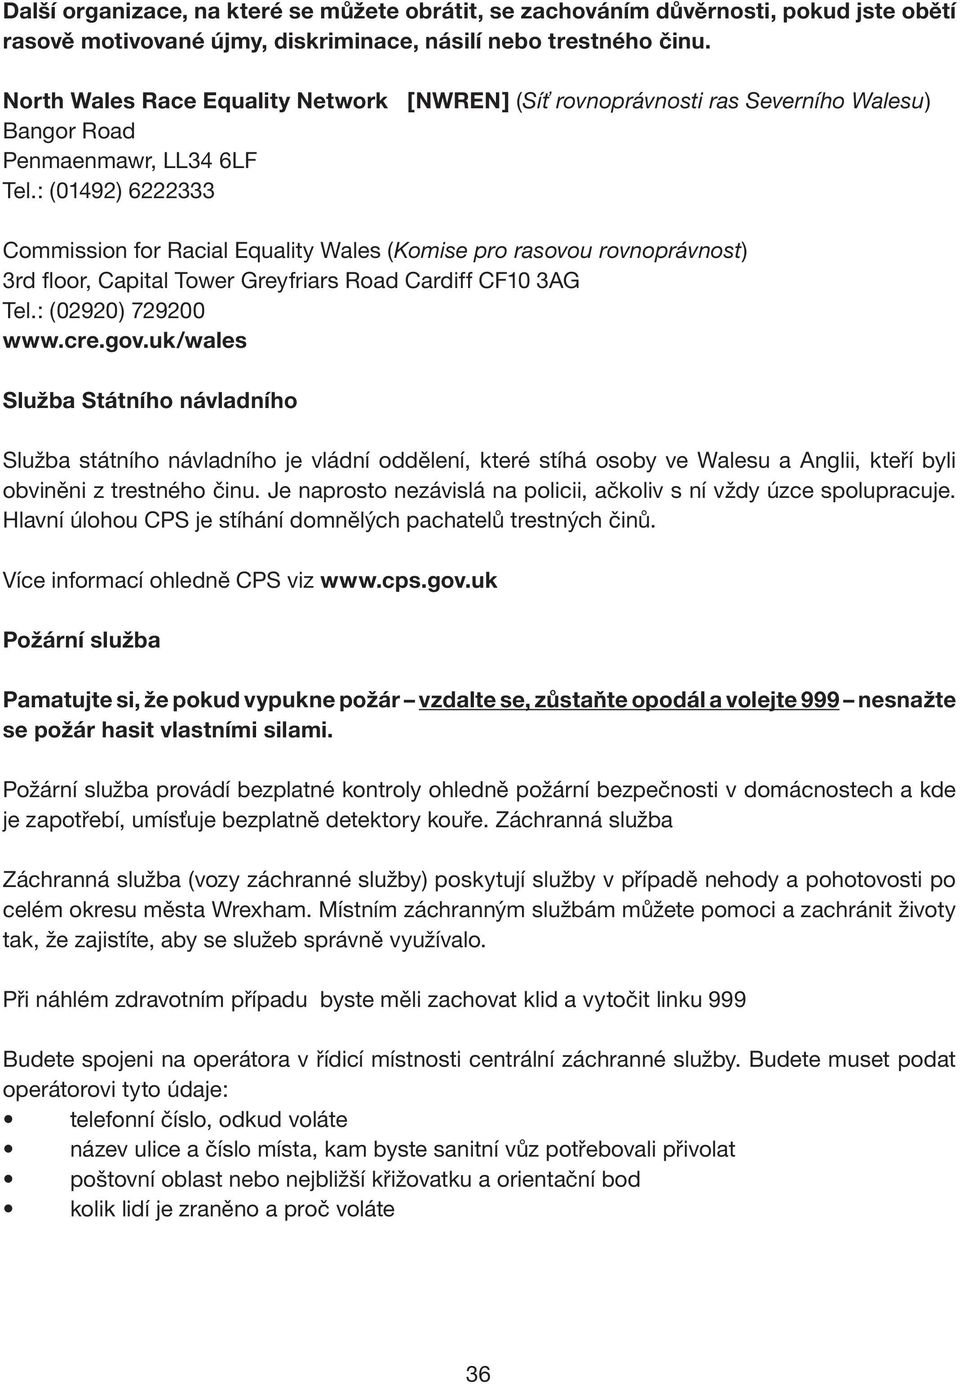 : (01492) 6222333 Commission for Racial Equality Wales (Komise pro rasovou rovnoprávnost) 3rd floor, Capital Tower Greyfriars Road Cardiff CF10 3AG Tel.: (02920) 729200 www.cre.gov.